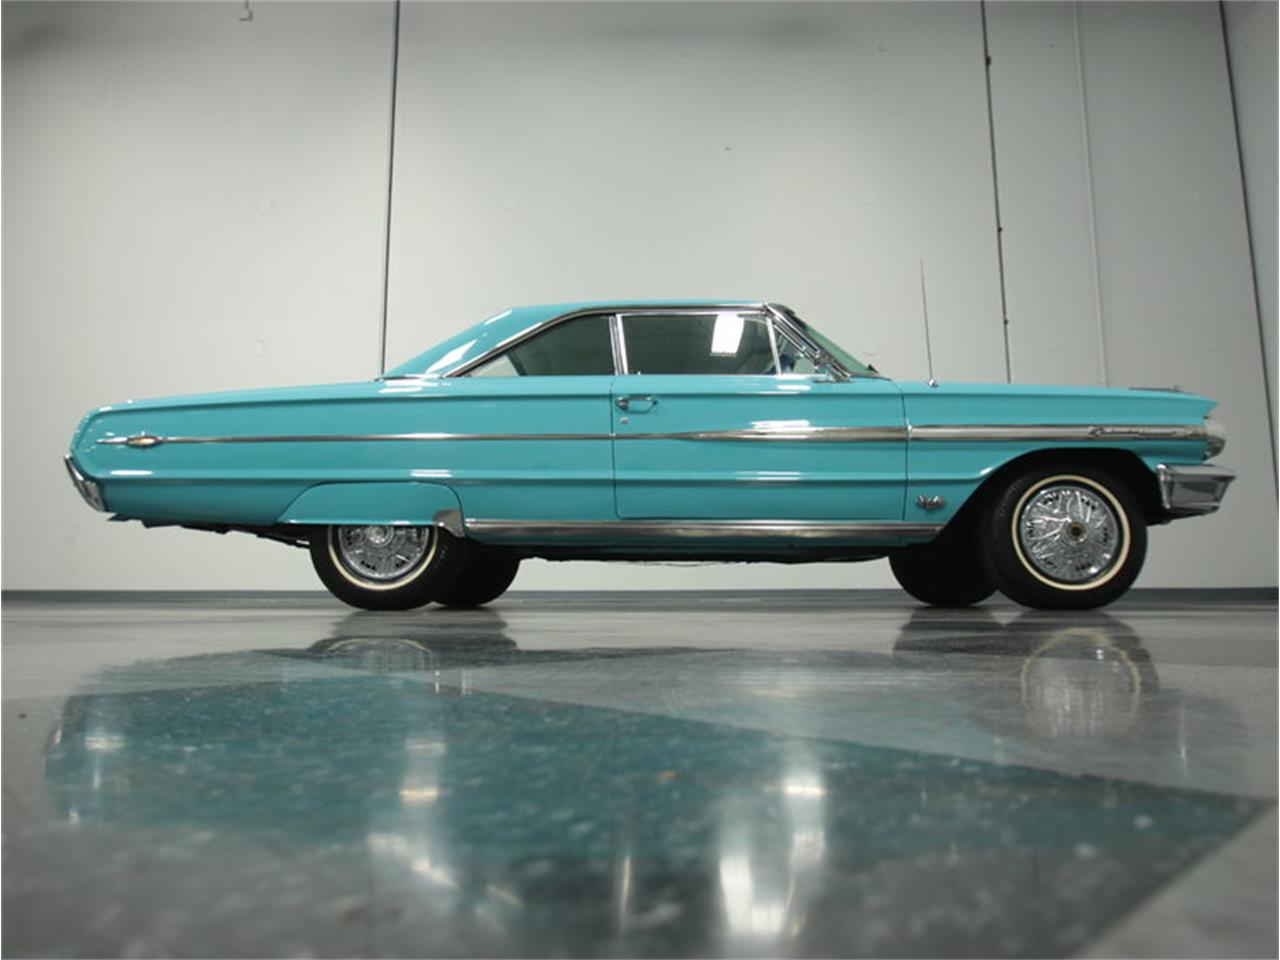 Large Picture of '64 Ford Galaxie 500 XL located in Georgia - $27,995.00 Offered by Streetside Classics - Atlanta - GMV3